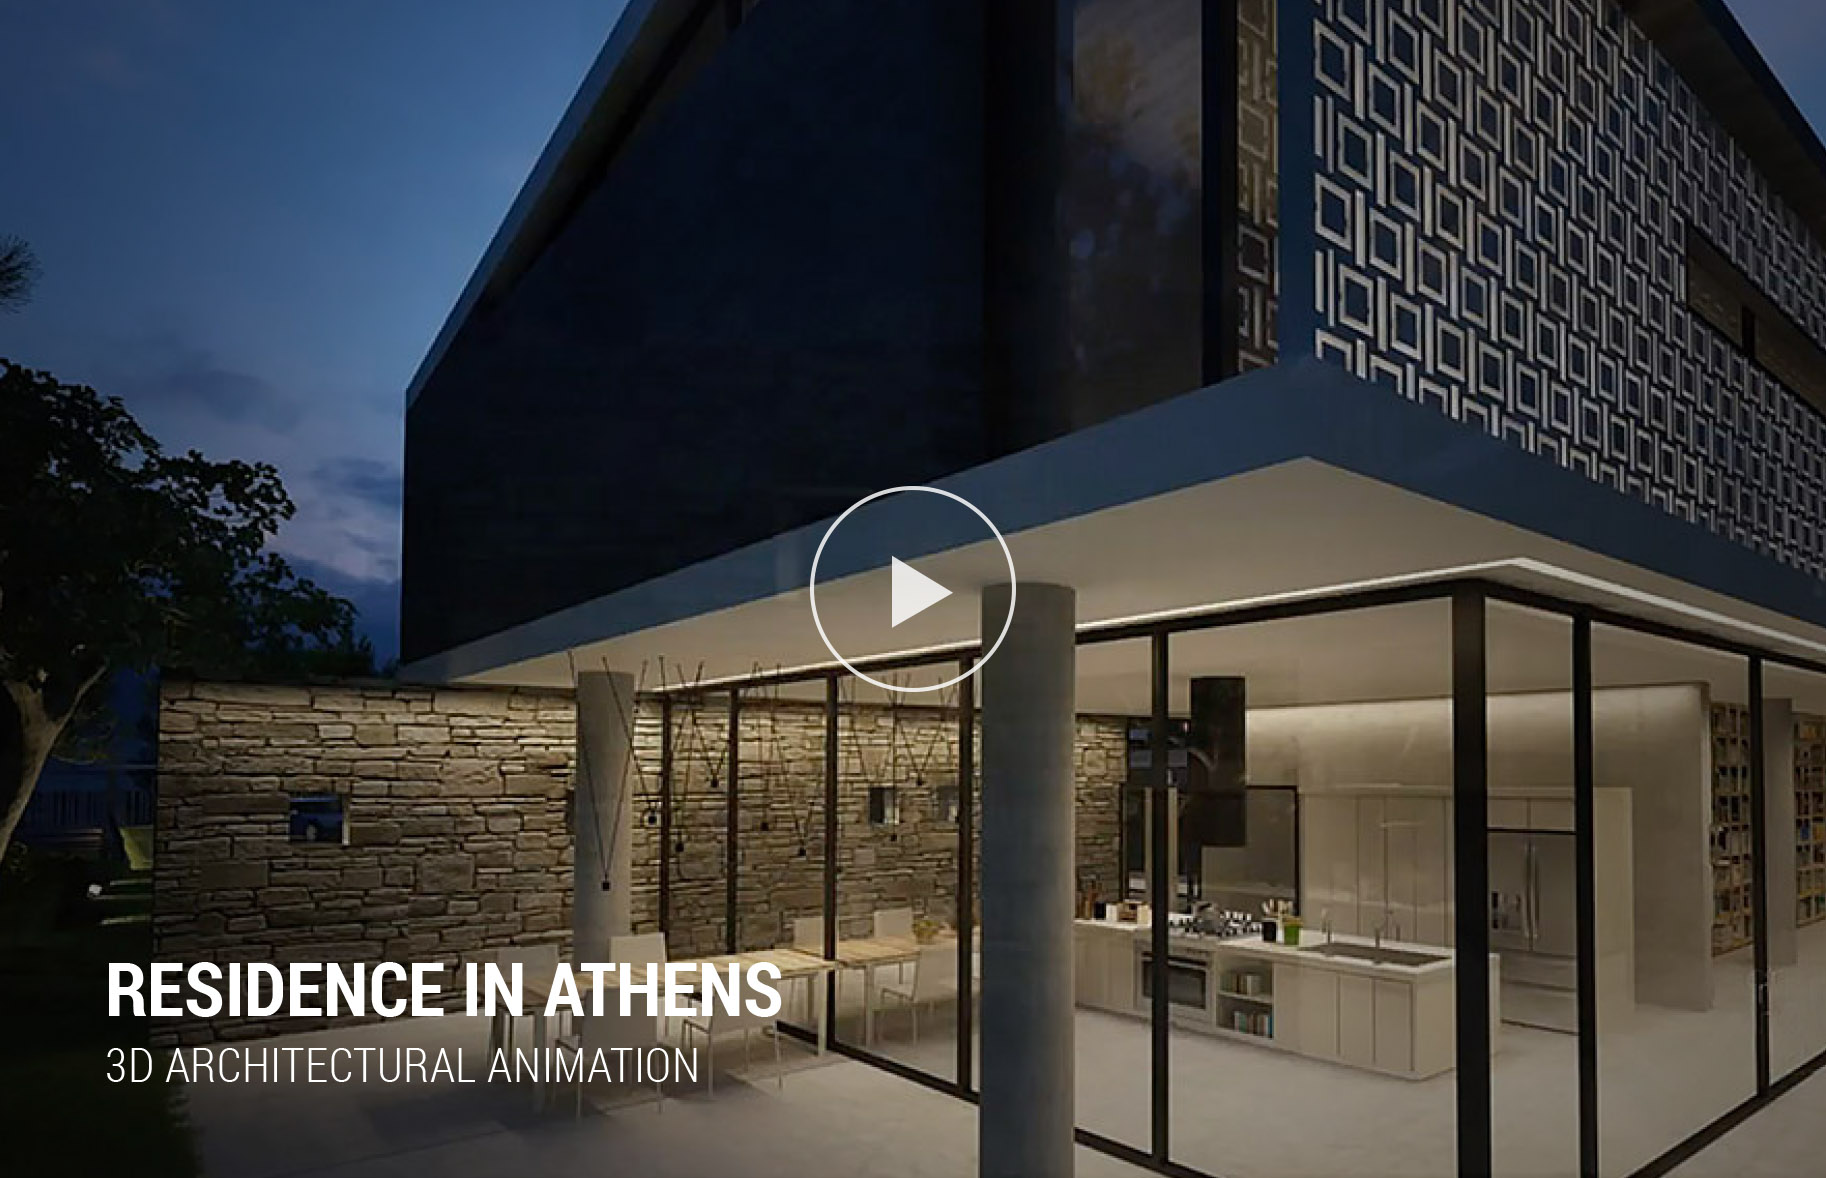 Schema Dimitra Chrona designer, creative director, architectural, 3D visualization, 3D Rendering, branding websites, digital, graphic design, interior design, real estate, luxury property, staging, museum, virtual, art, brochures, exhibitions, logotype, logo, Canada Quebec Montreal Athens Greece schema design residence athens video large over.jpg